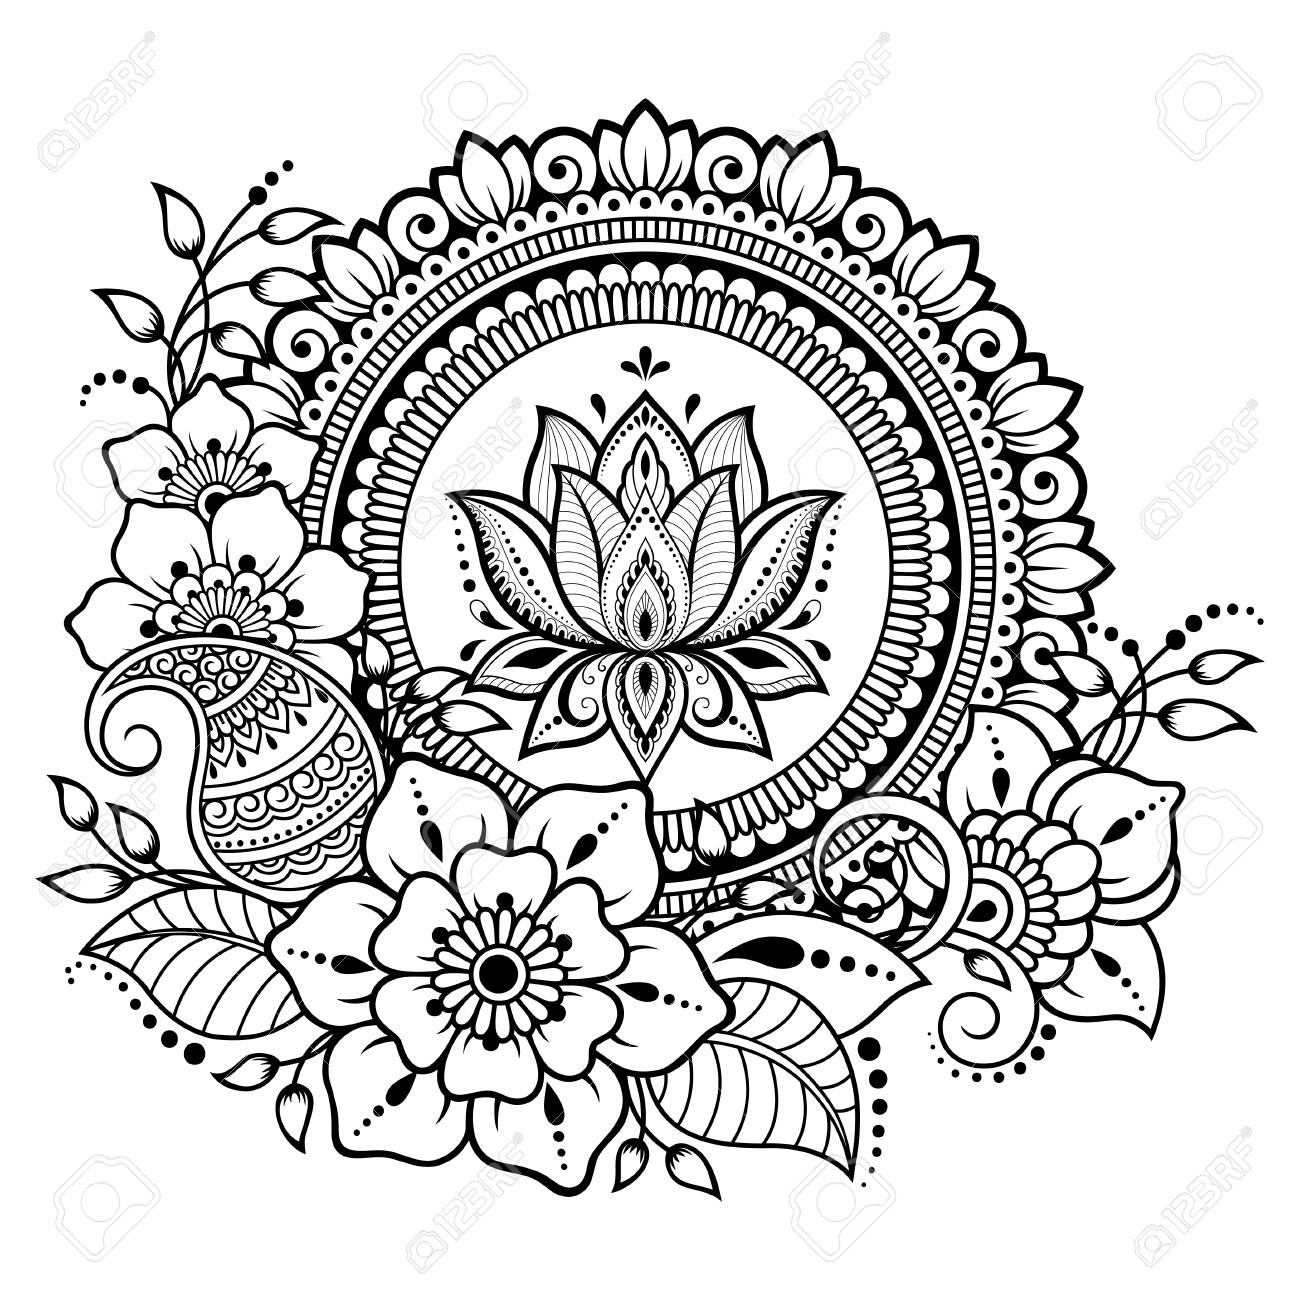 Circular pattern in form of mandala with lotus flower for Henna, Mehndi, tattoo, decoration. Decorative ornament in ethnic oriental style. Coloring book page. - 110244803